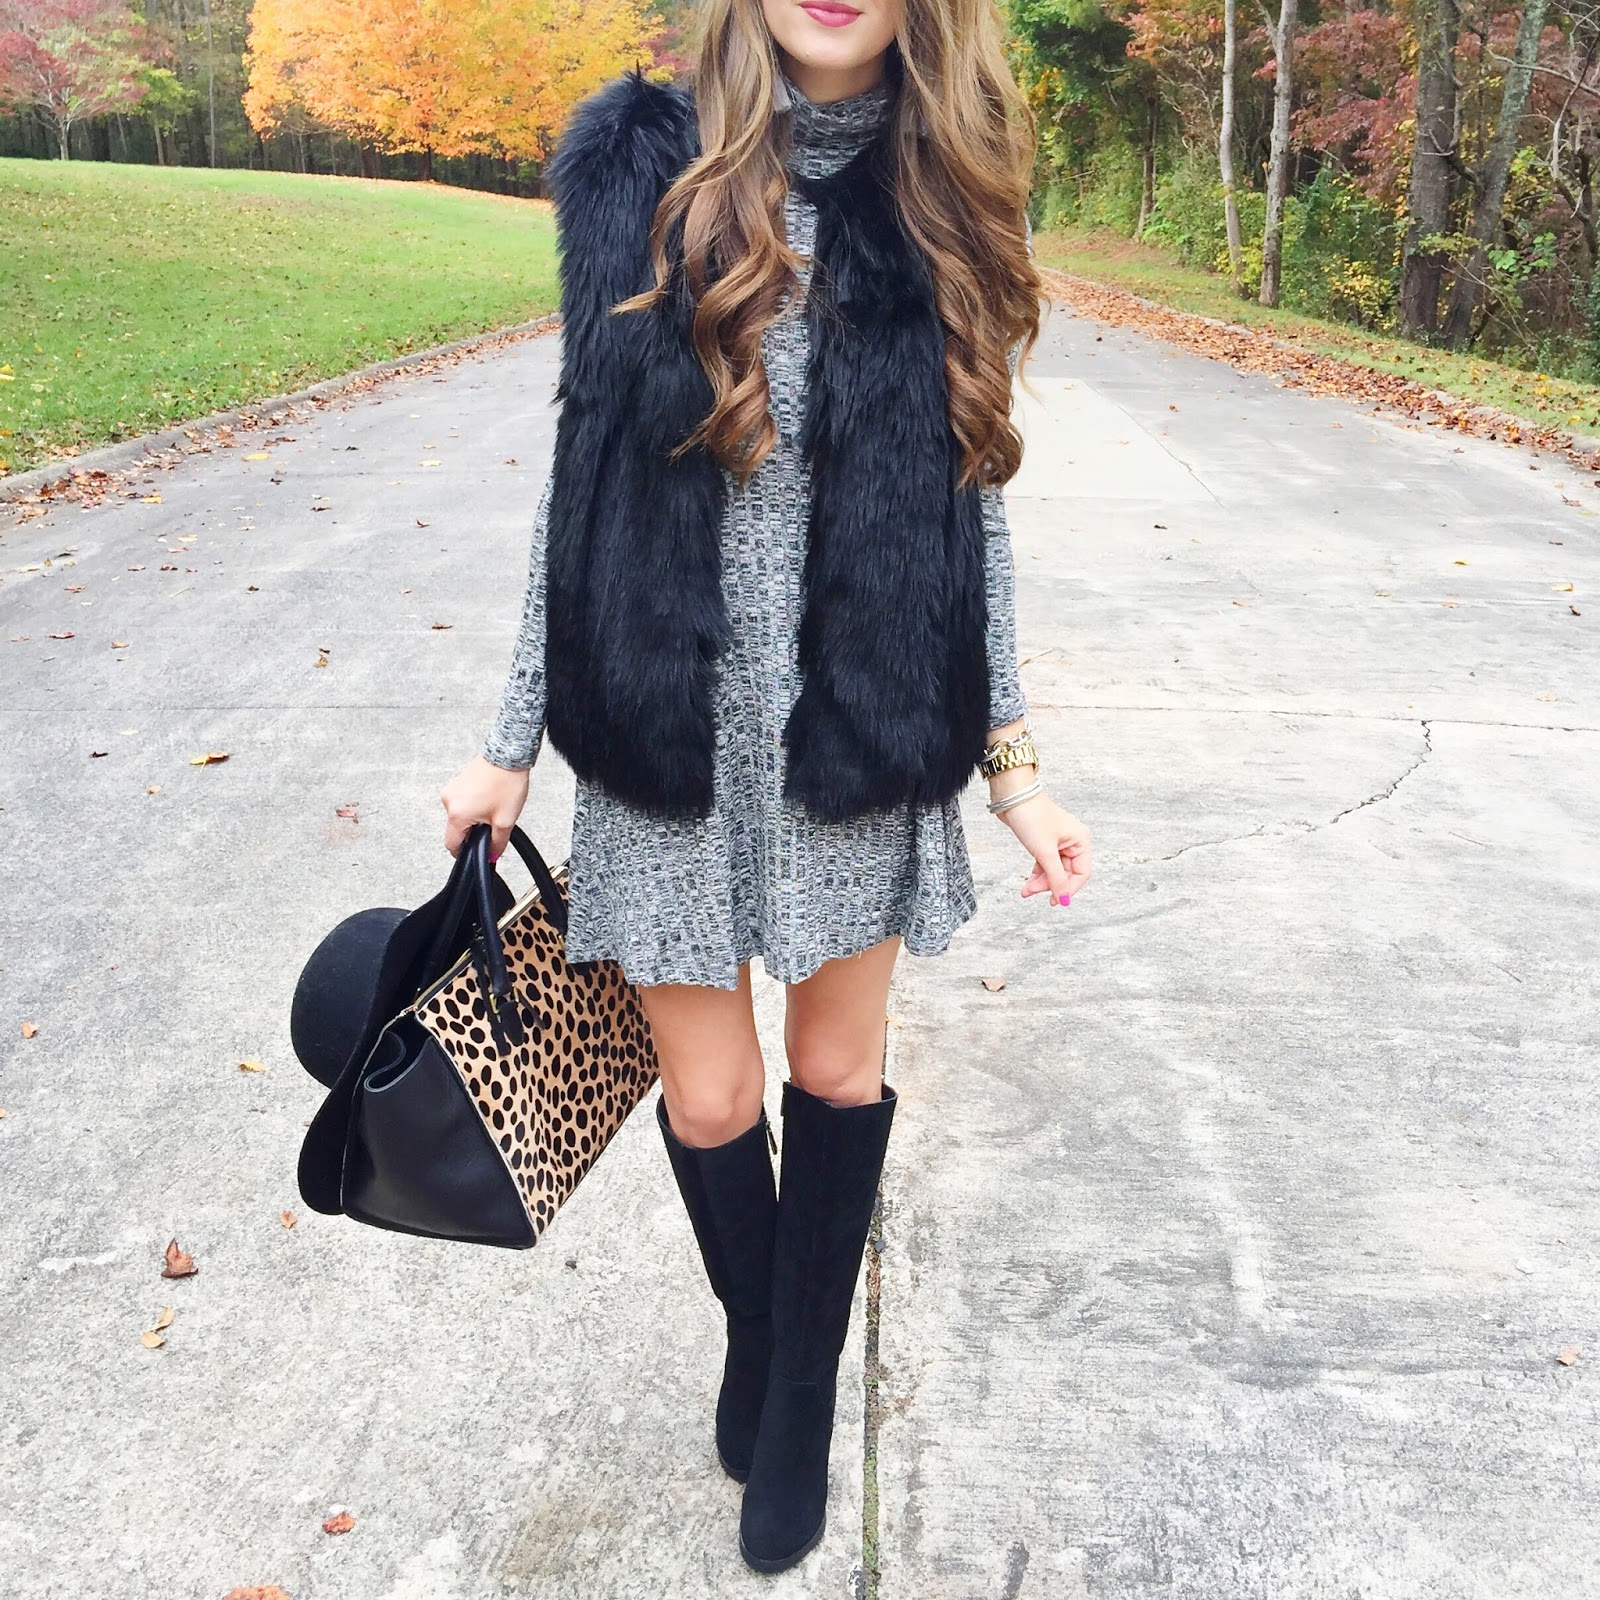 T Shirt Dress Outfits Tumblr Dress Images